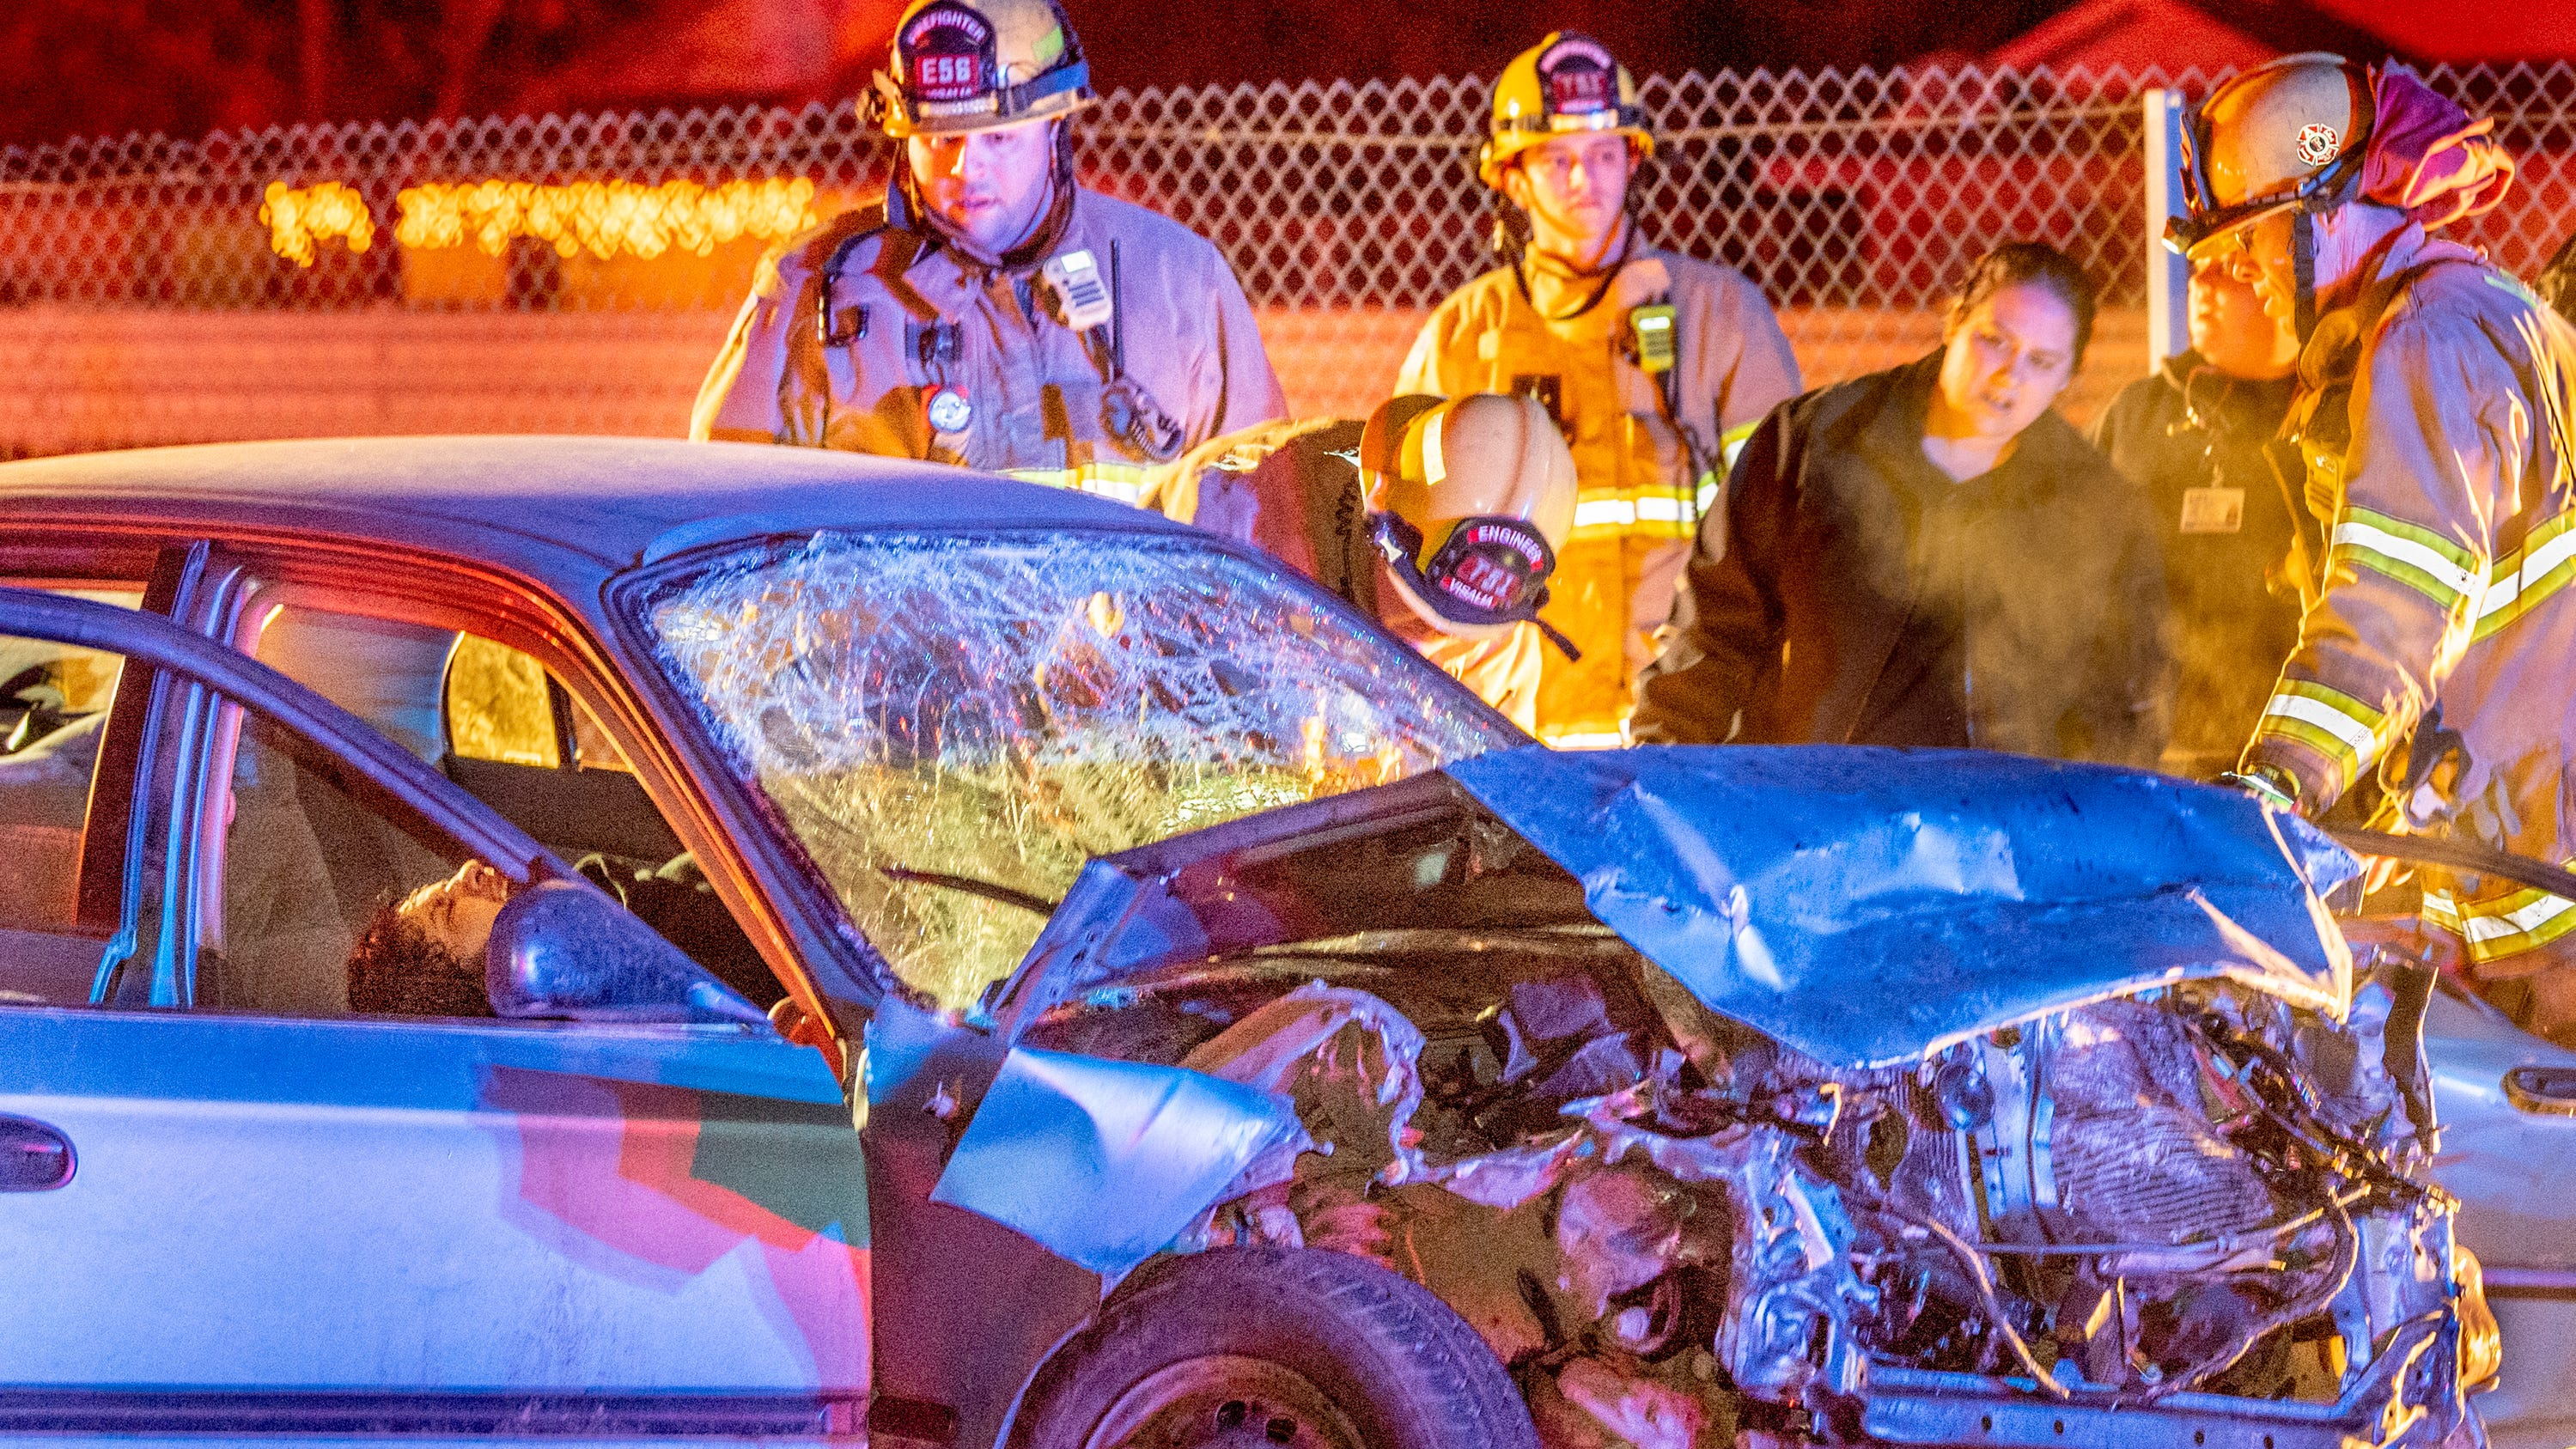 Two people were transported to a local hospital with moderate to major injuries after a collision between three cars on Noble Avenue at McAuliff Street on Tuesday, December 11, 2018. A stolen Honda, one of two cars traveling east at high speeds, struck a third car stopped at the stop sign. The second car struck the Honda immediately afterward. The driver from the Honda, left, was pinned in until firemen could get him out and is suspected of driving under the influence. Occupants of the Honda were all juveniles. Visalia Police are investigating the cause and relationships between occupants of the speeding cars.